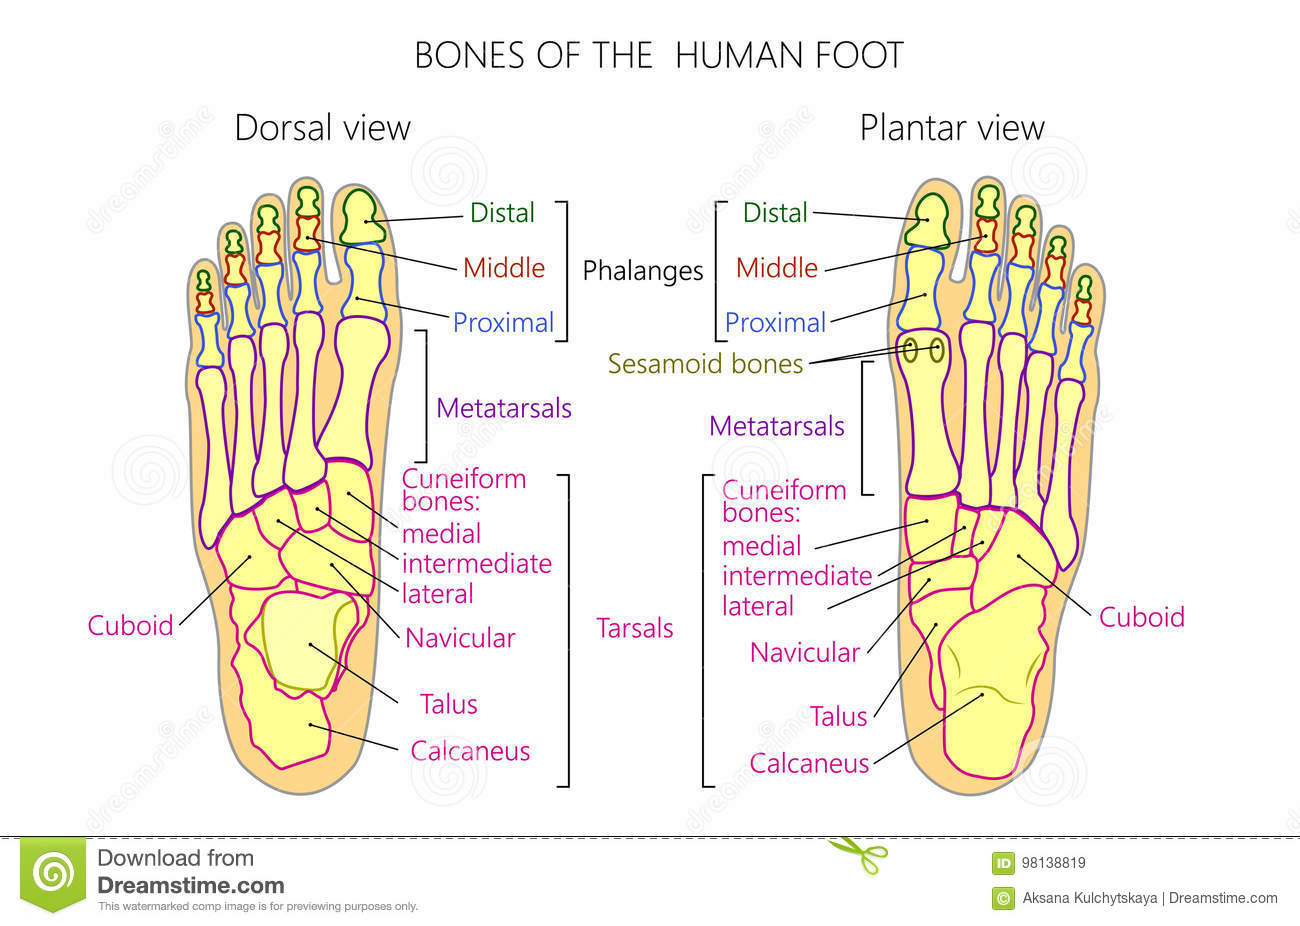 hight resolution of vector illustration of a human leg with denominations of the bones of the foot anatomy of dorsal and plantar views of the foot for advertising or medical